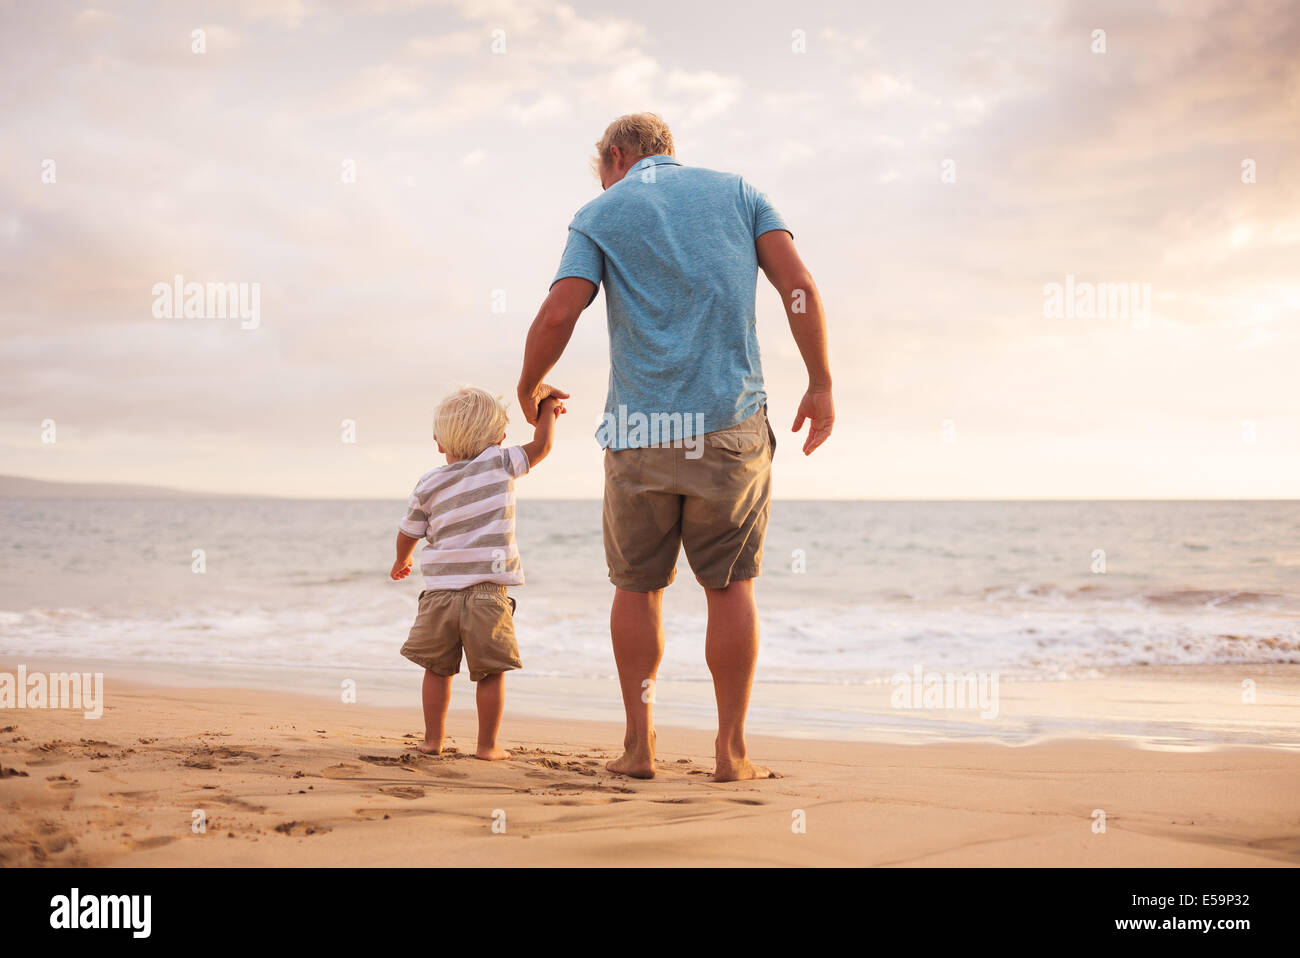 Father and son holding hands walking on the beach at sunset - Stock Image